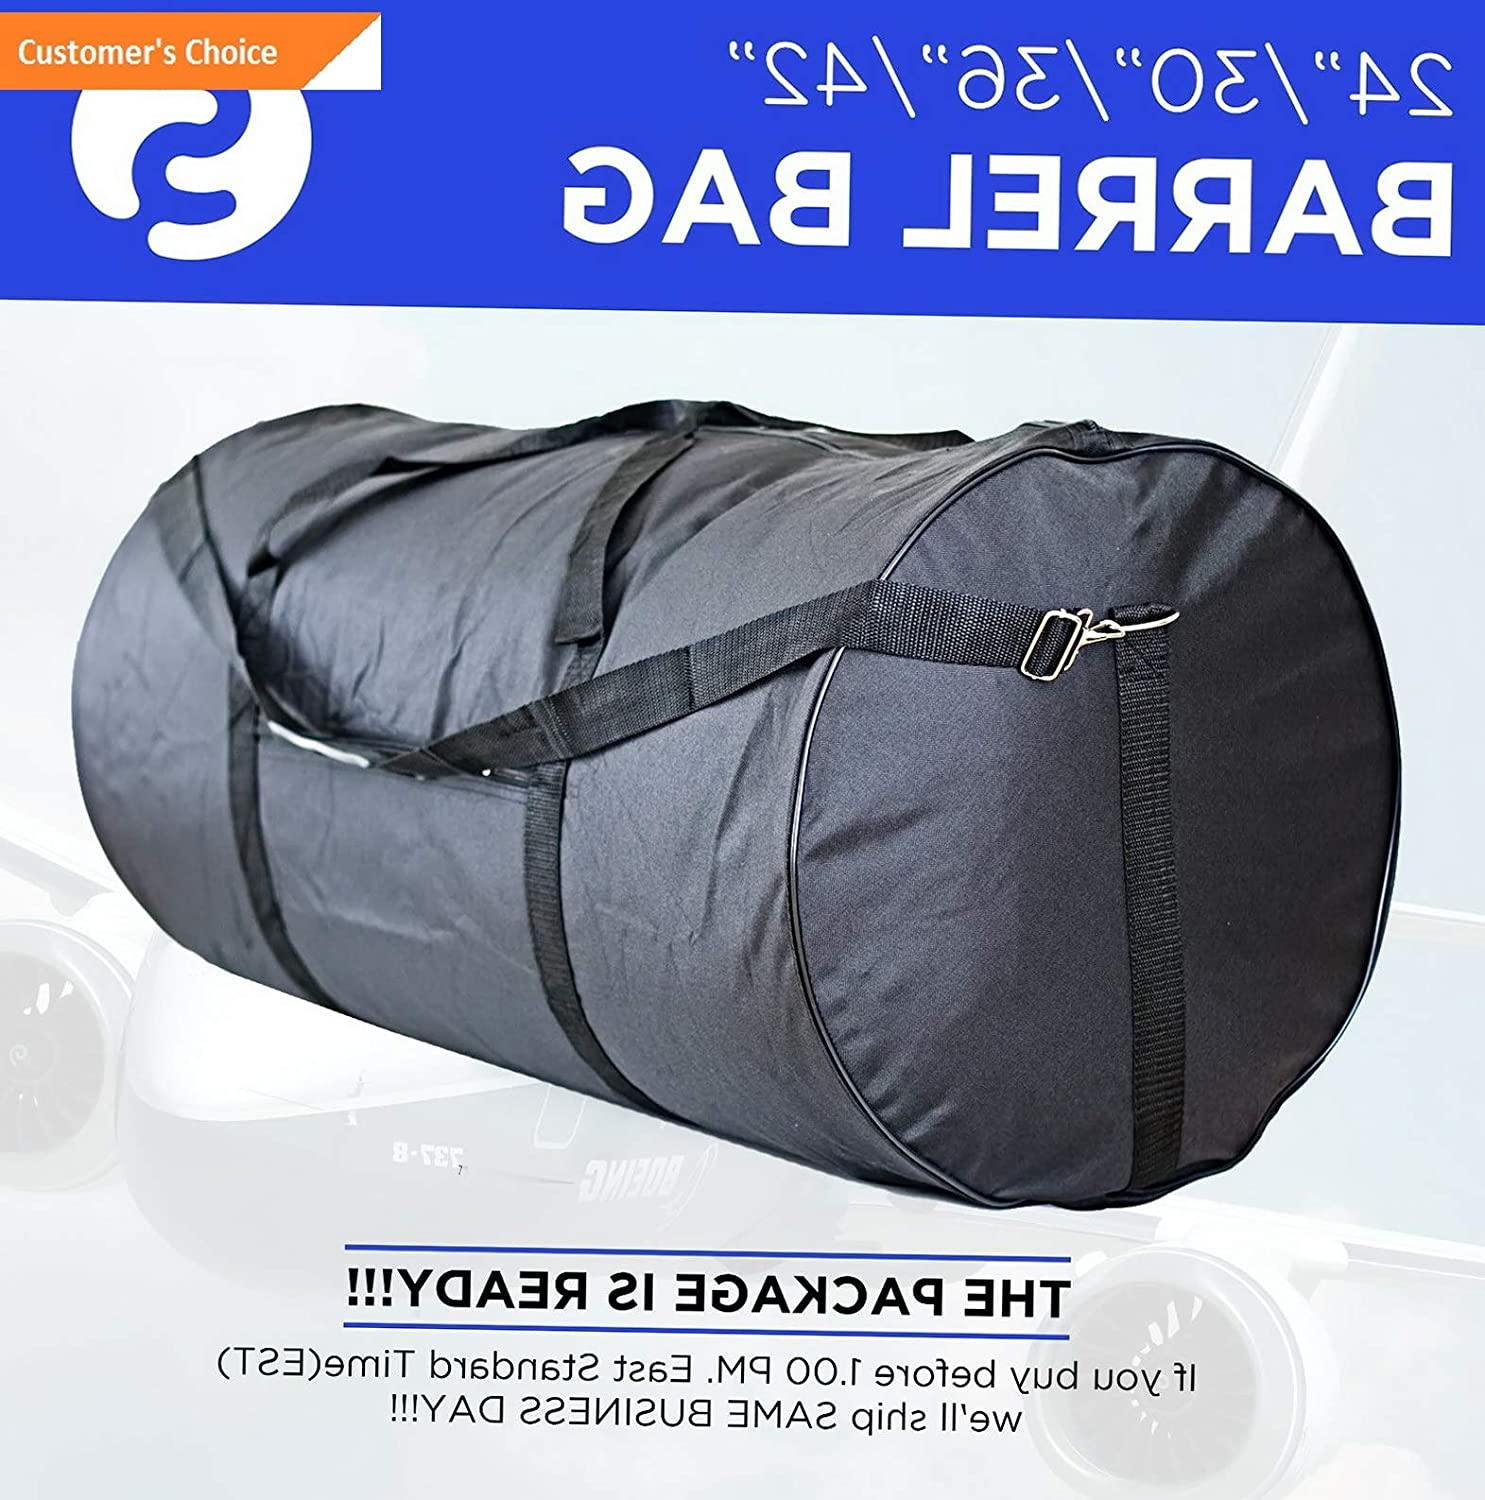 Amazon.com | Sandover Roll Duffle Bag 24 30 36 42 Equipaje gage Roll Bag Maletin Gym Bag Tuna | Model LGGG - 12760 | 42 Inches, 100 Lb | Luggage